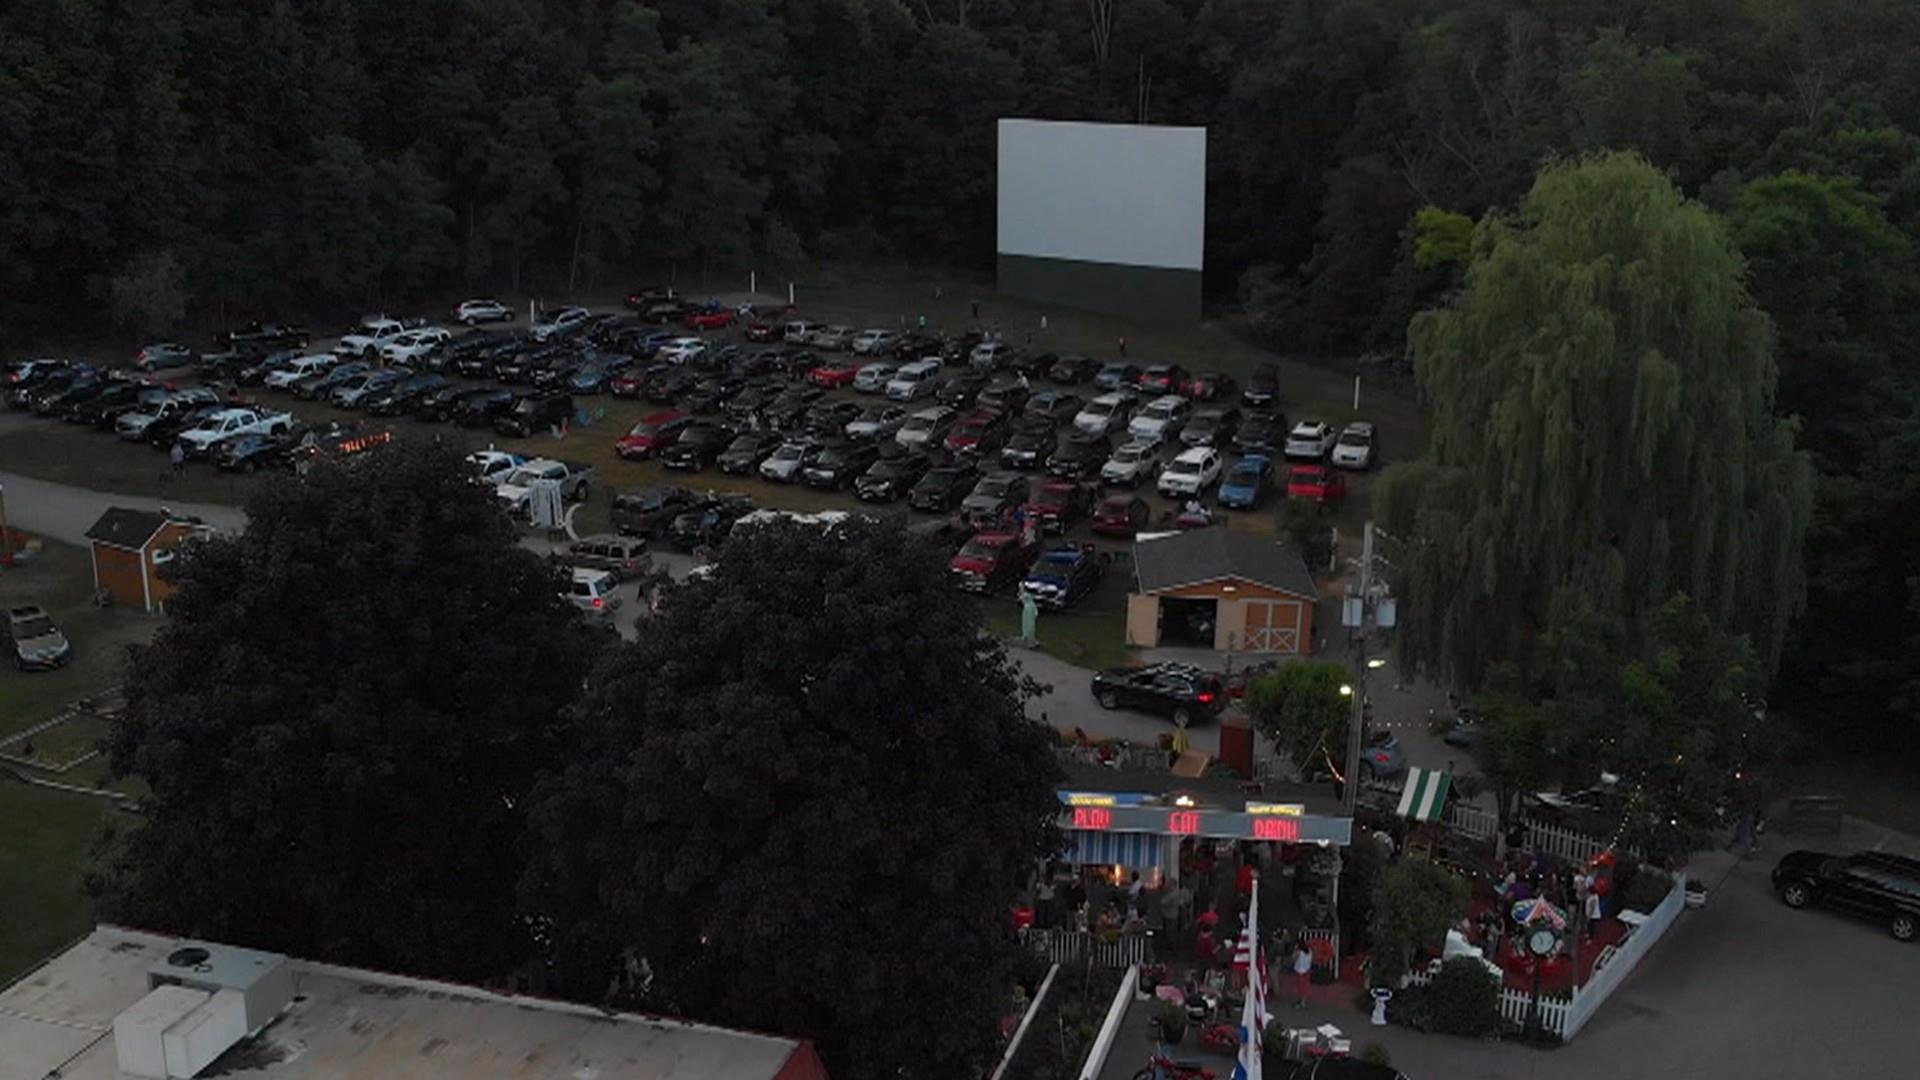 Drive In Movie Theaters Are A Nostalgic Choice During The Coronavirus